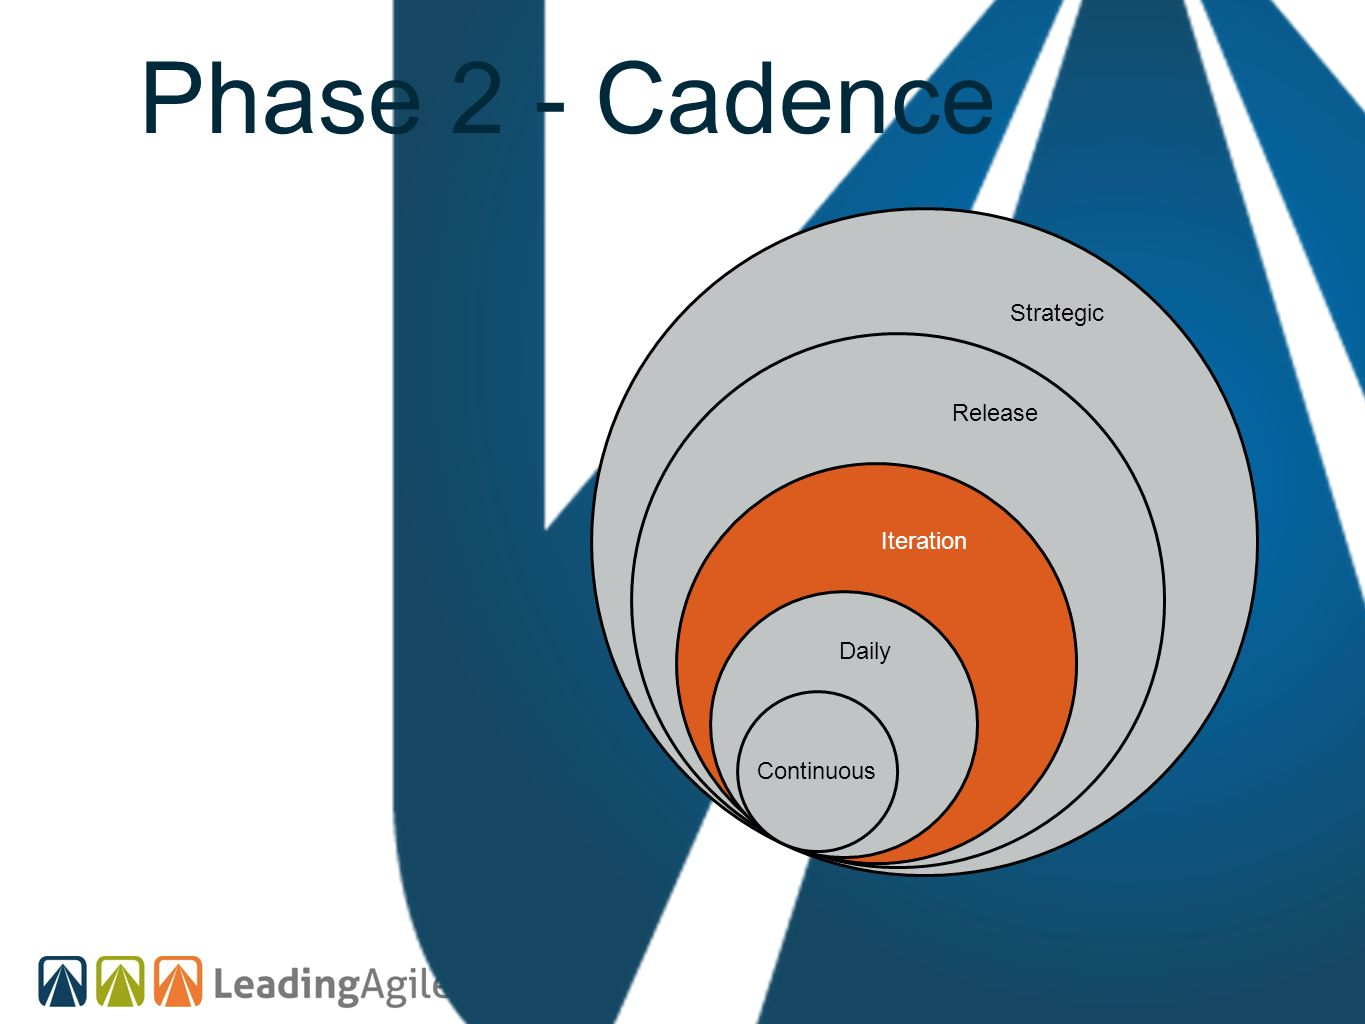 Phase 2 - Cadence Continuous Strategic Release Iteration Daily